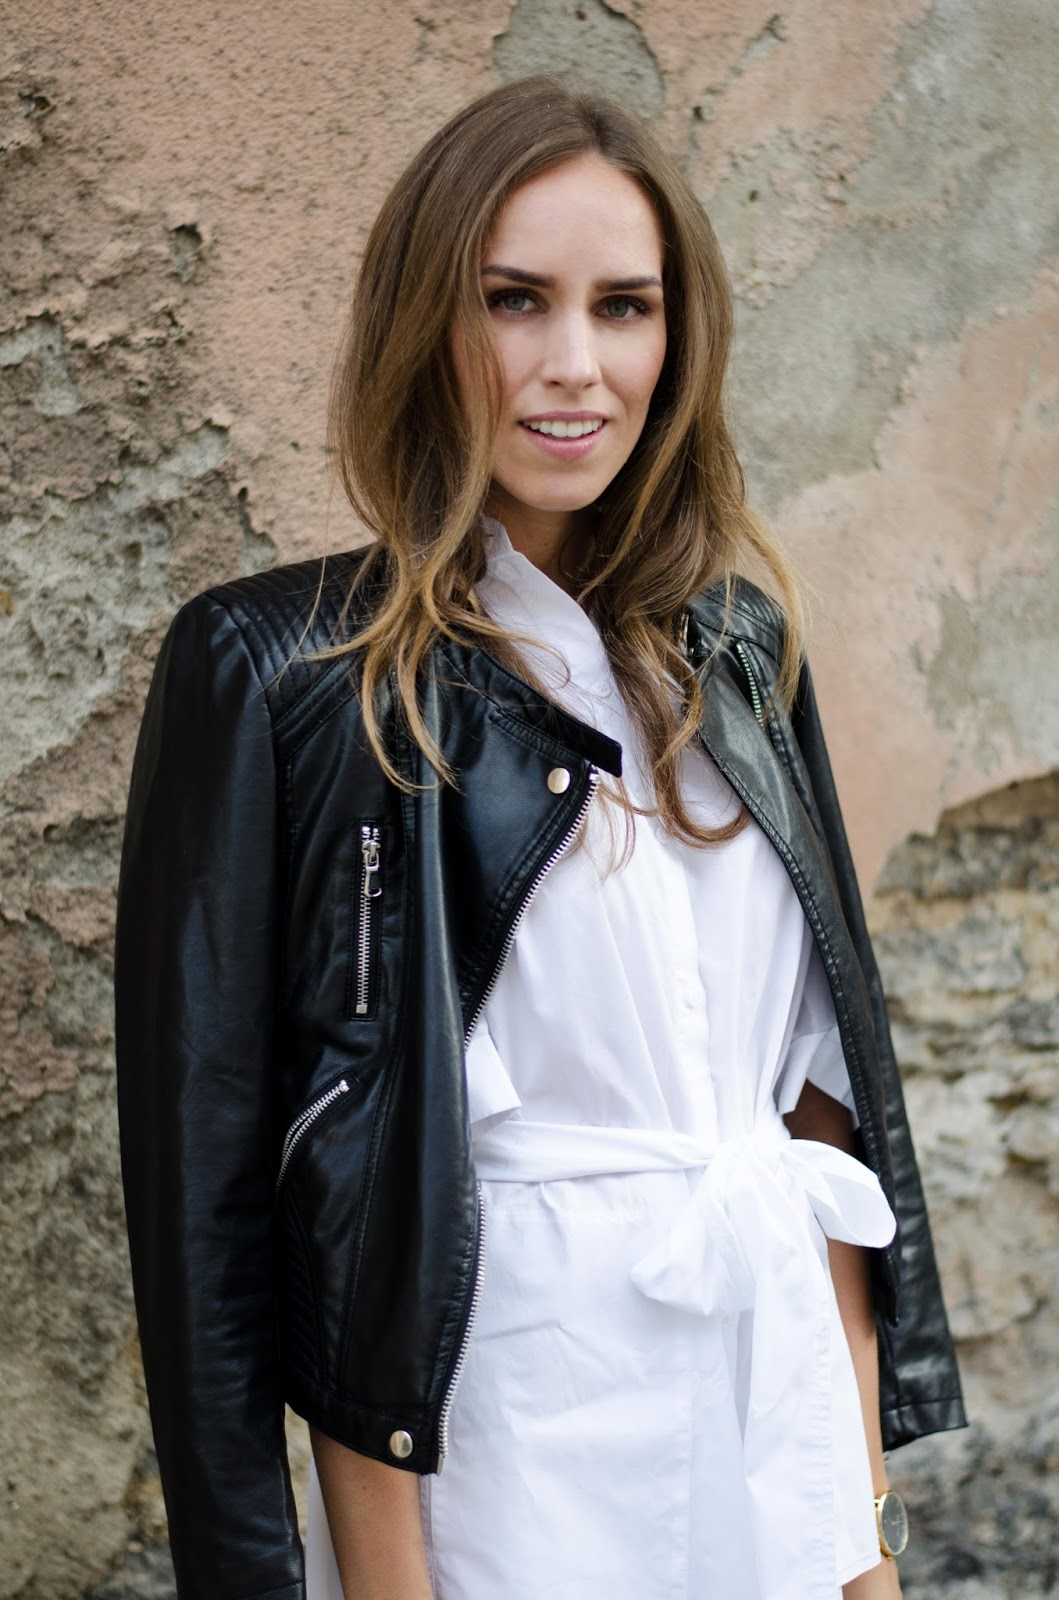 kristjaana mere leather jacket white shirt dress outfit